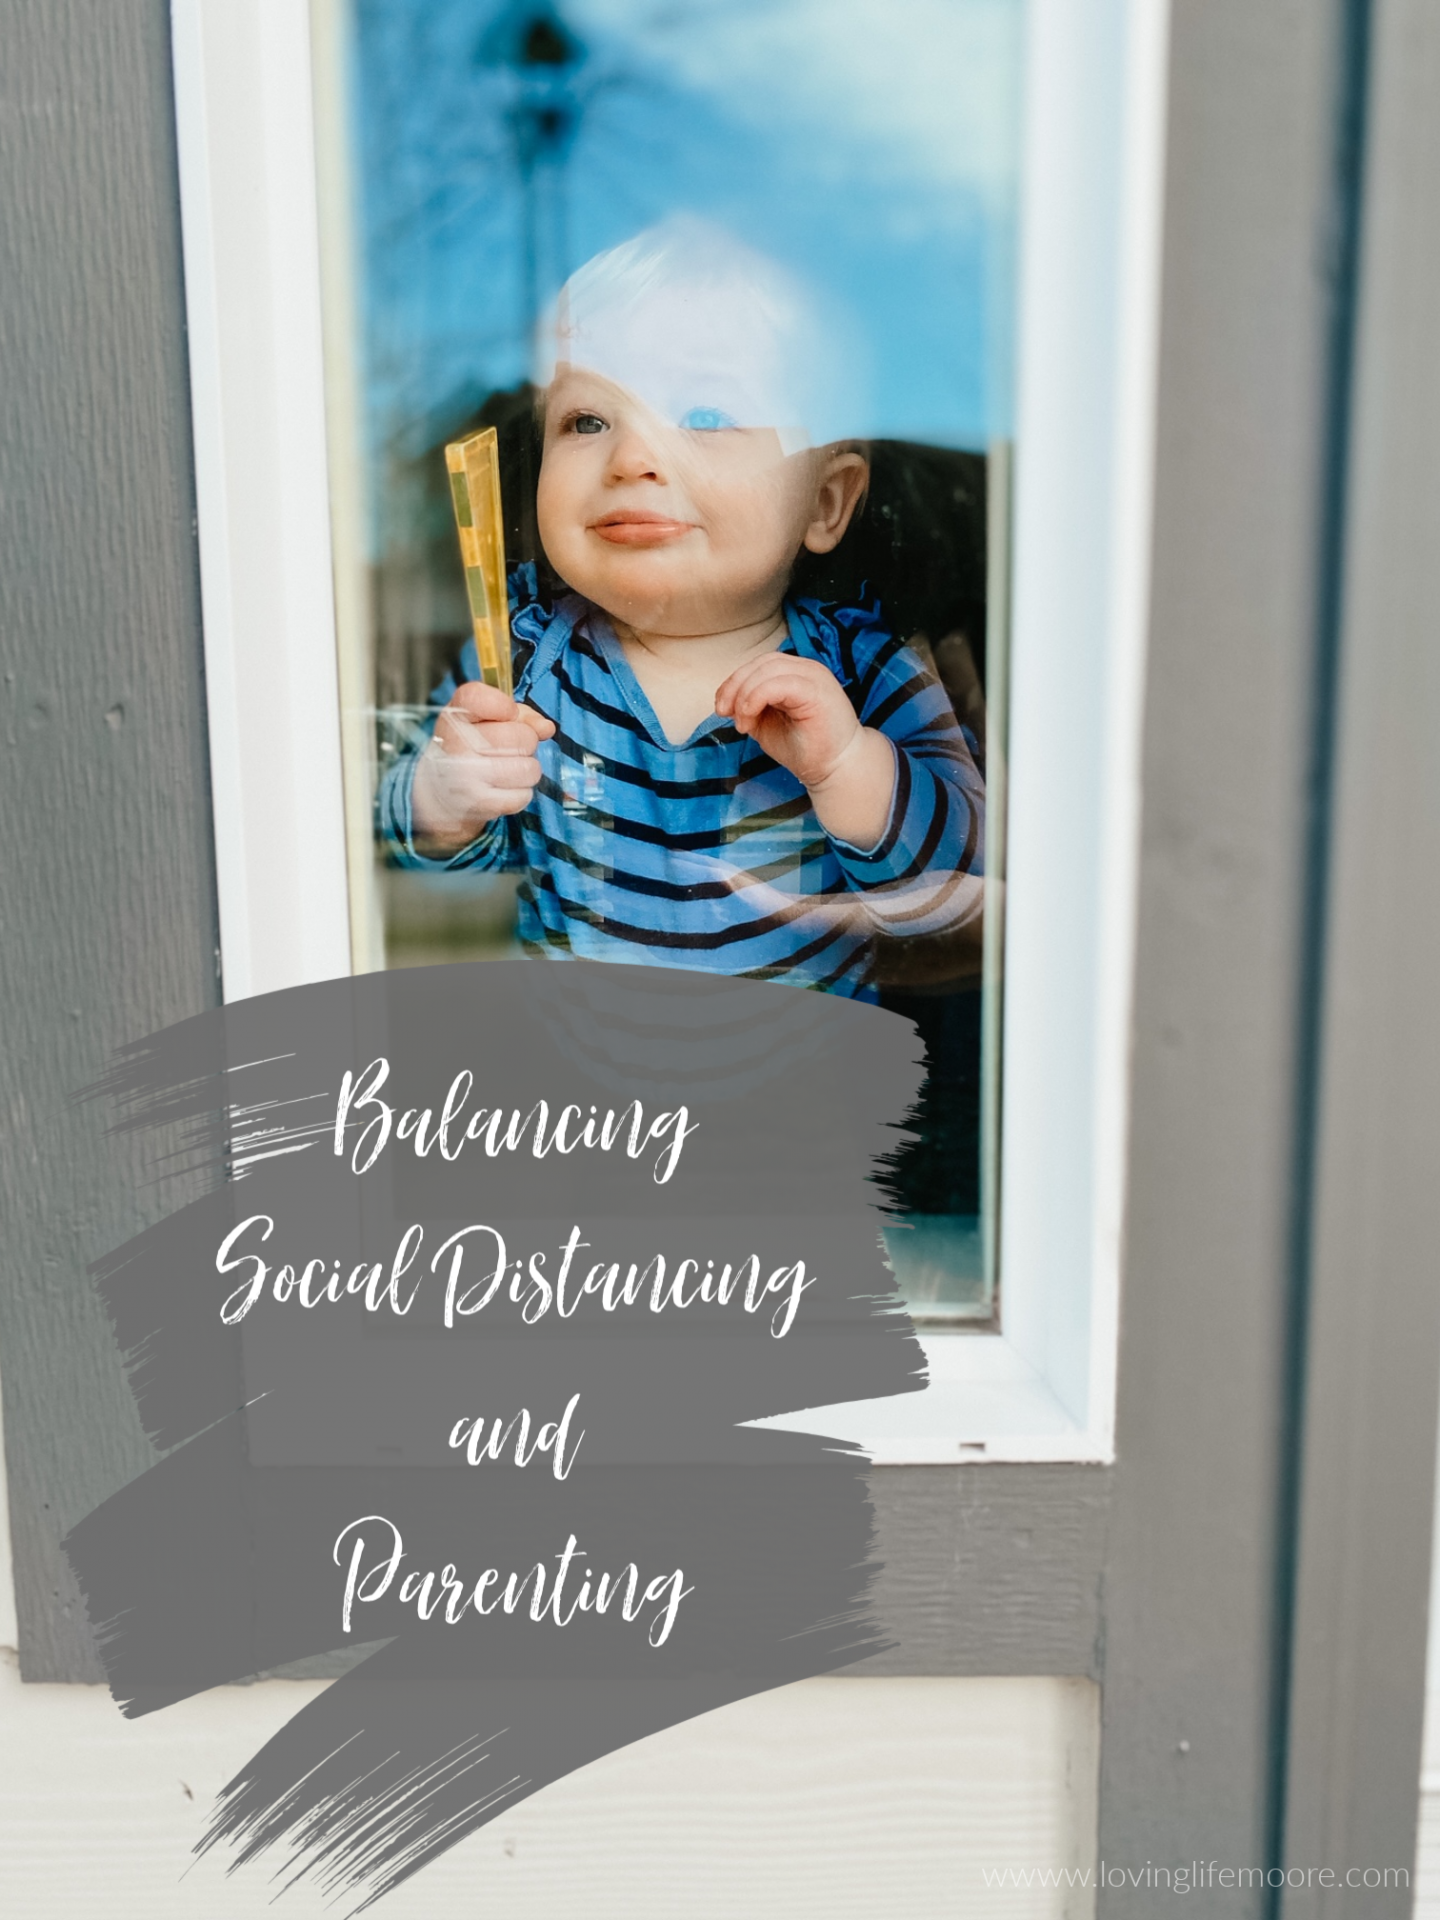 social distancing, parenting, and how to make it work